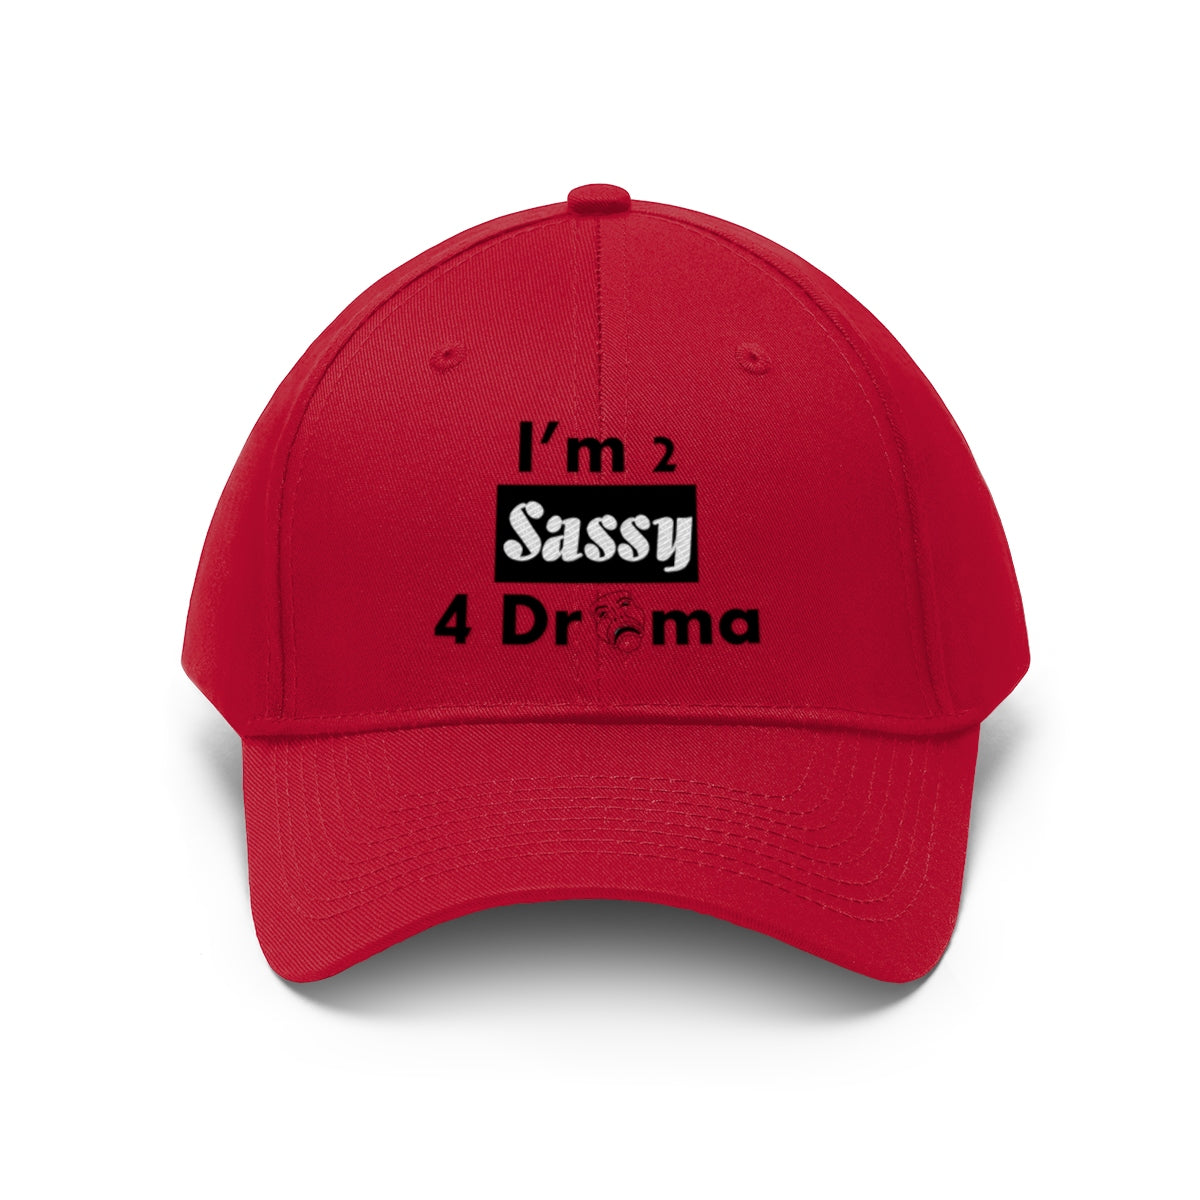 Sassy & Swag Collections - I'm 2 Sassy 4 Drama Women's Twill Hat